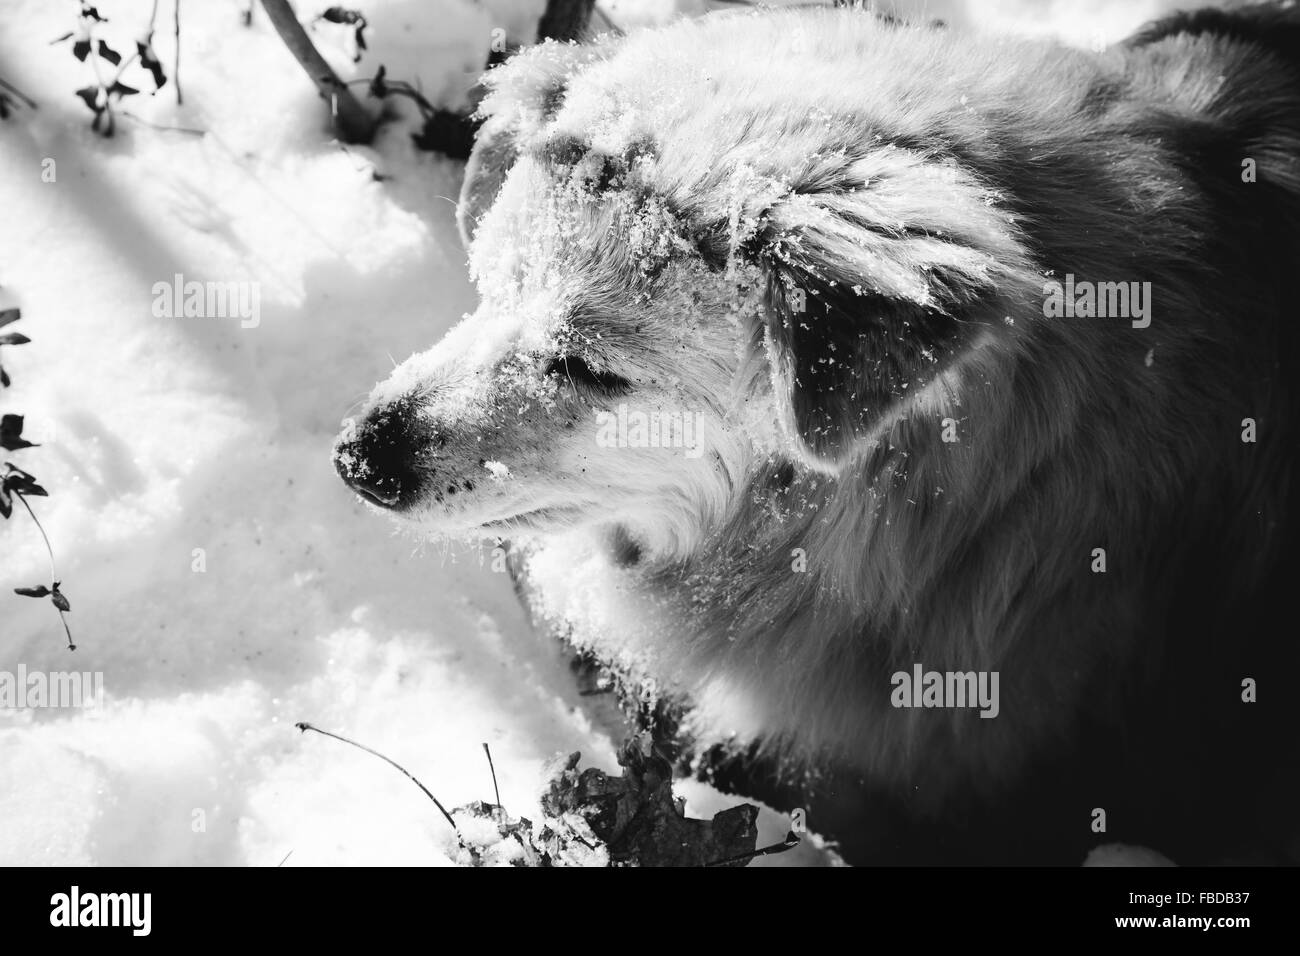 Close-Up Of Dog Standing On Snow - Stock Image